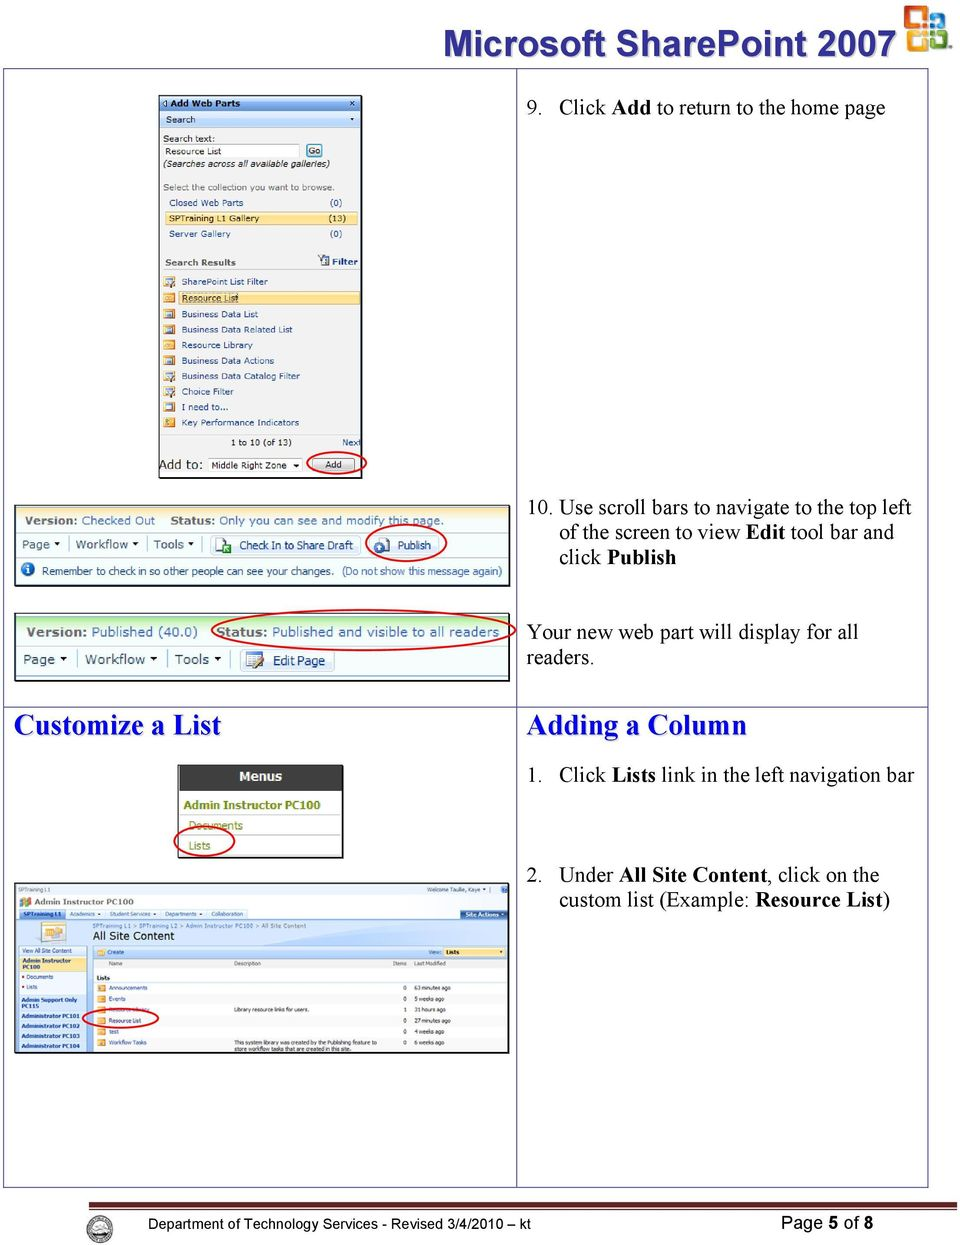 new web part will display for all readers. Customize a List Adding a Column 1.